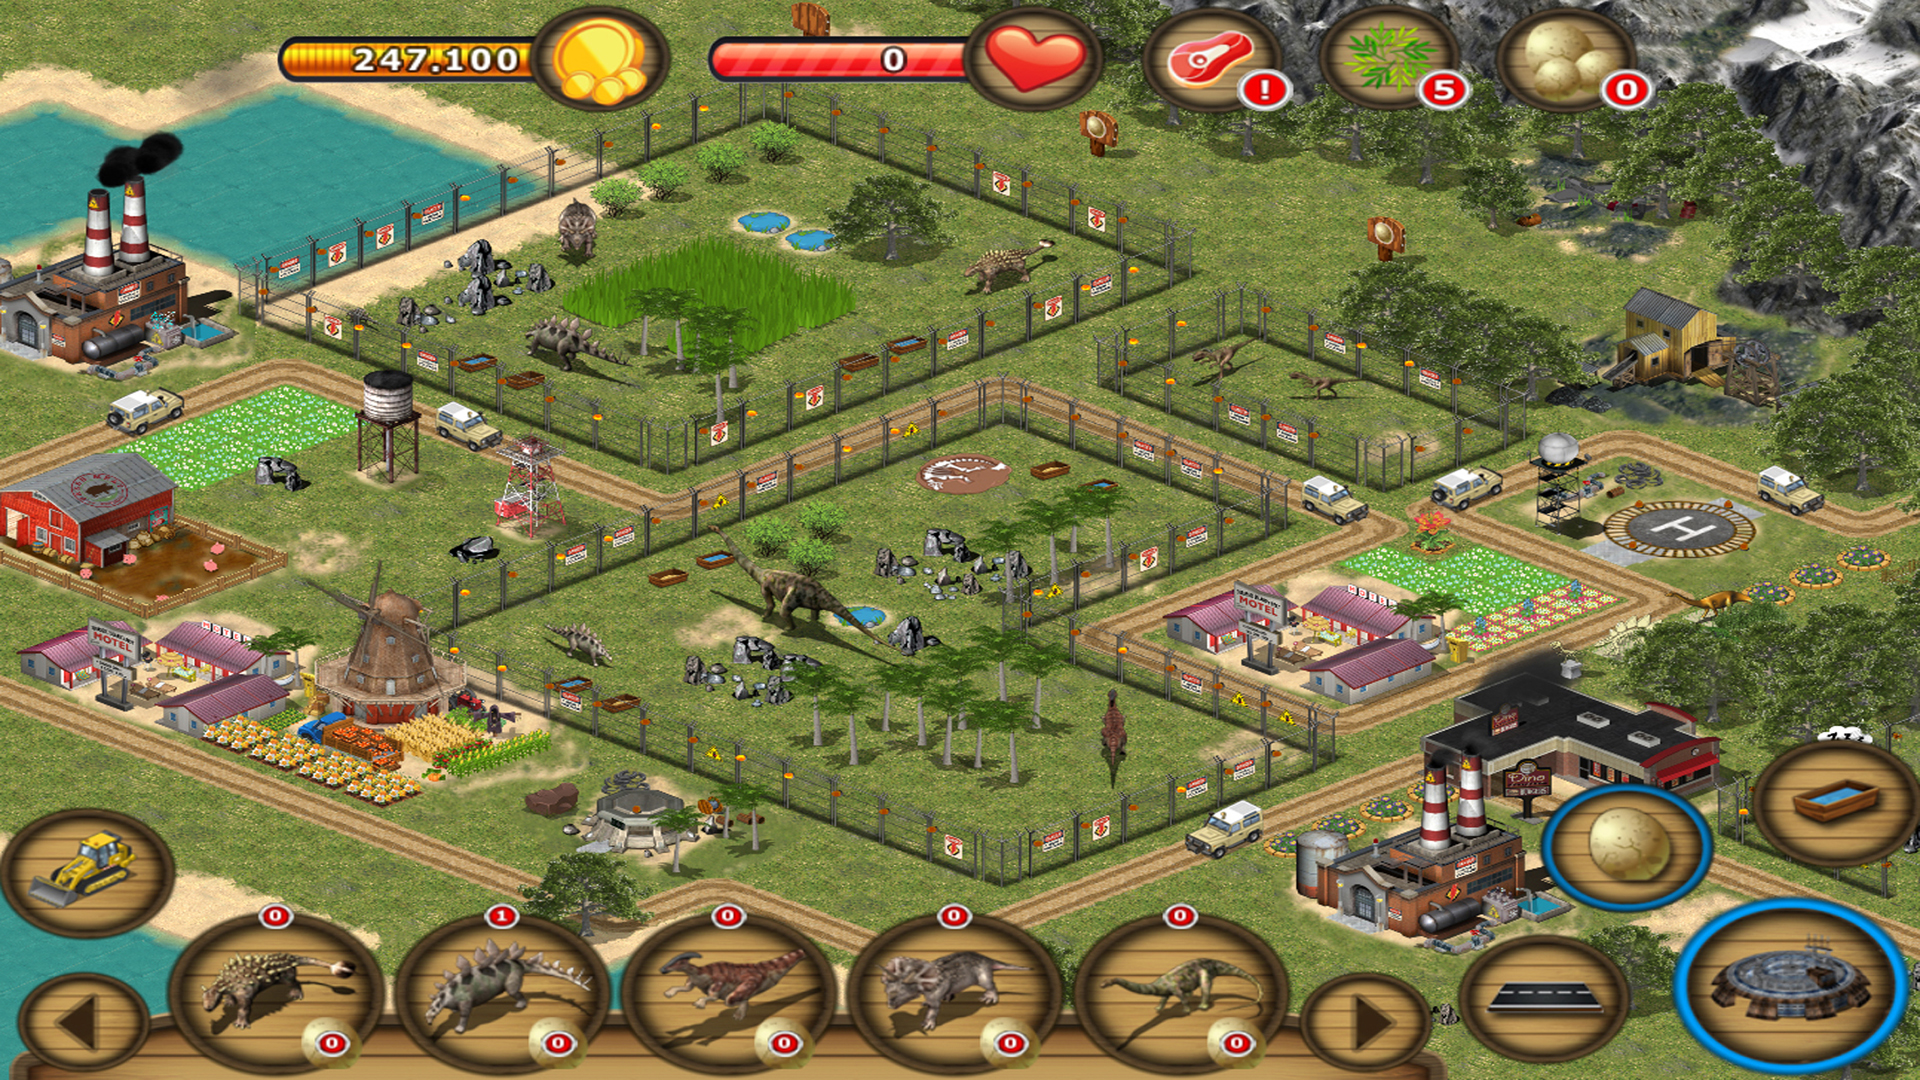 Zoo Builder Game - Play online at Y8.com